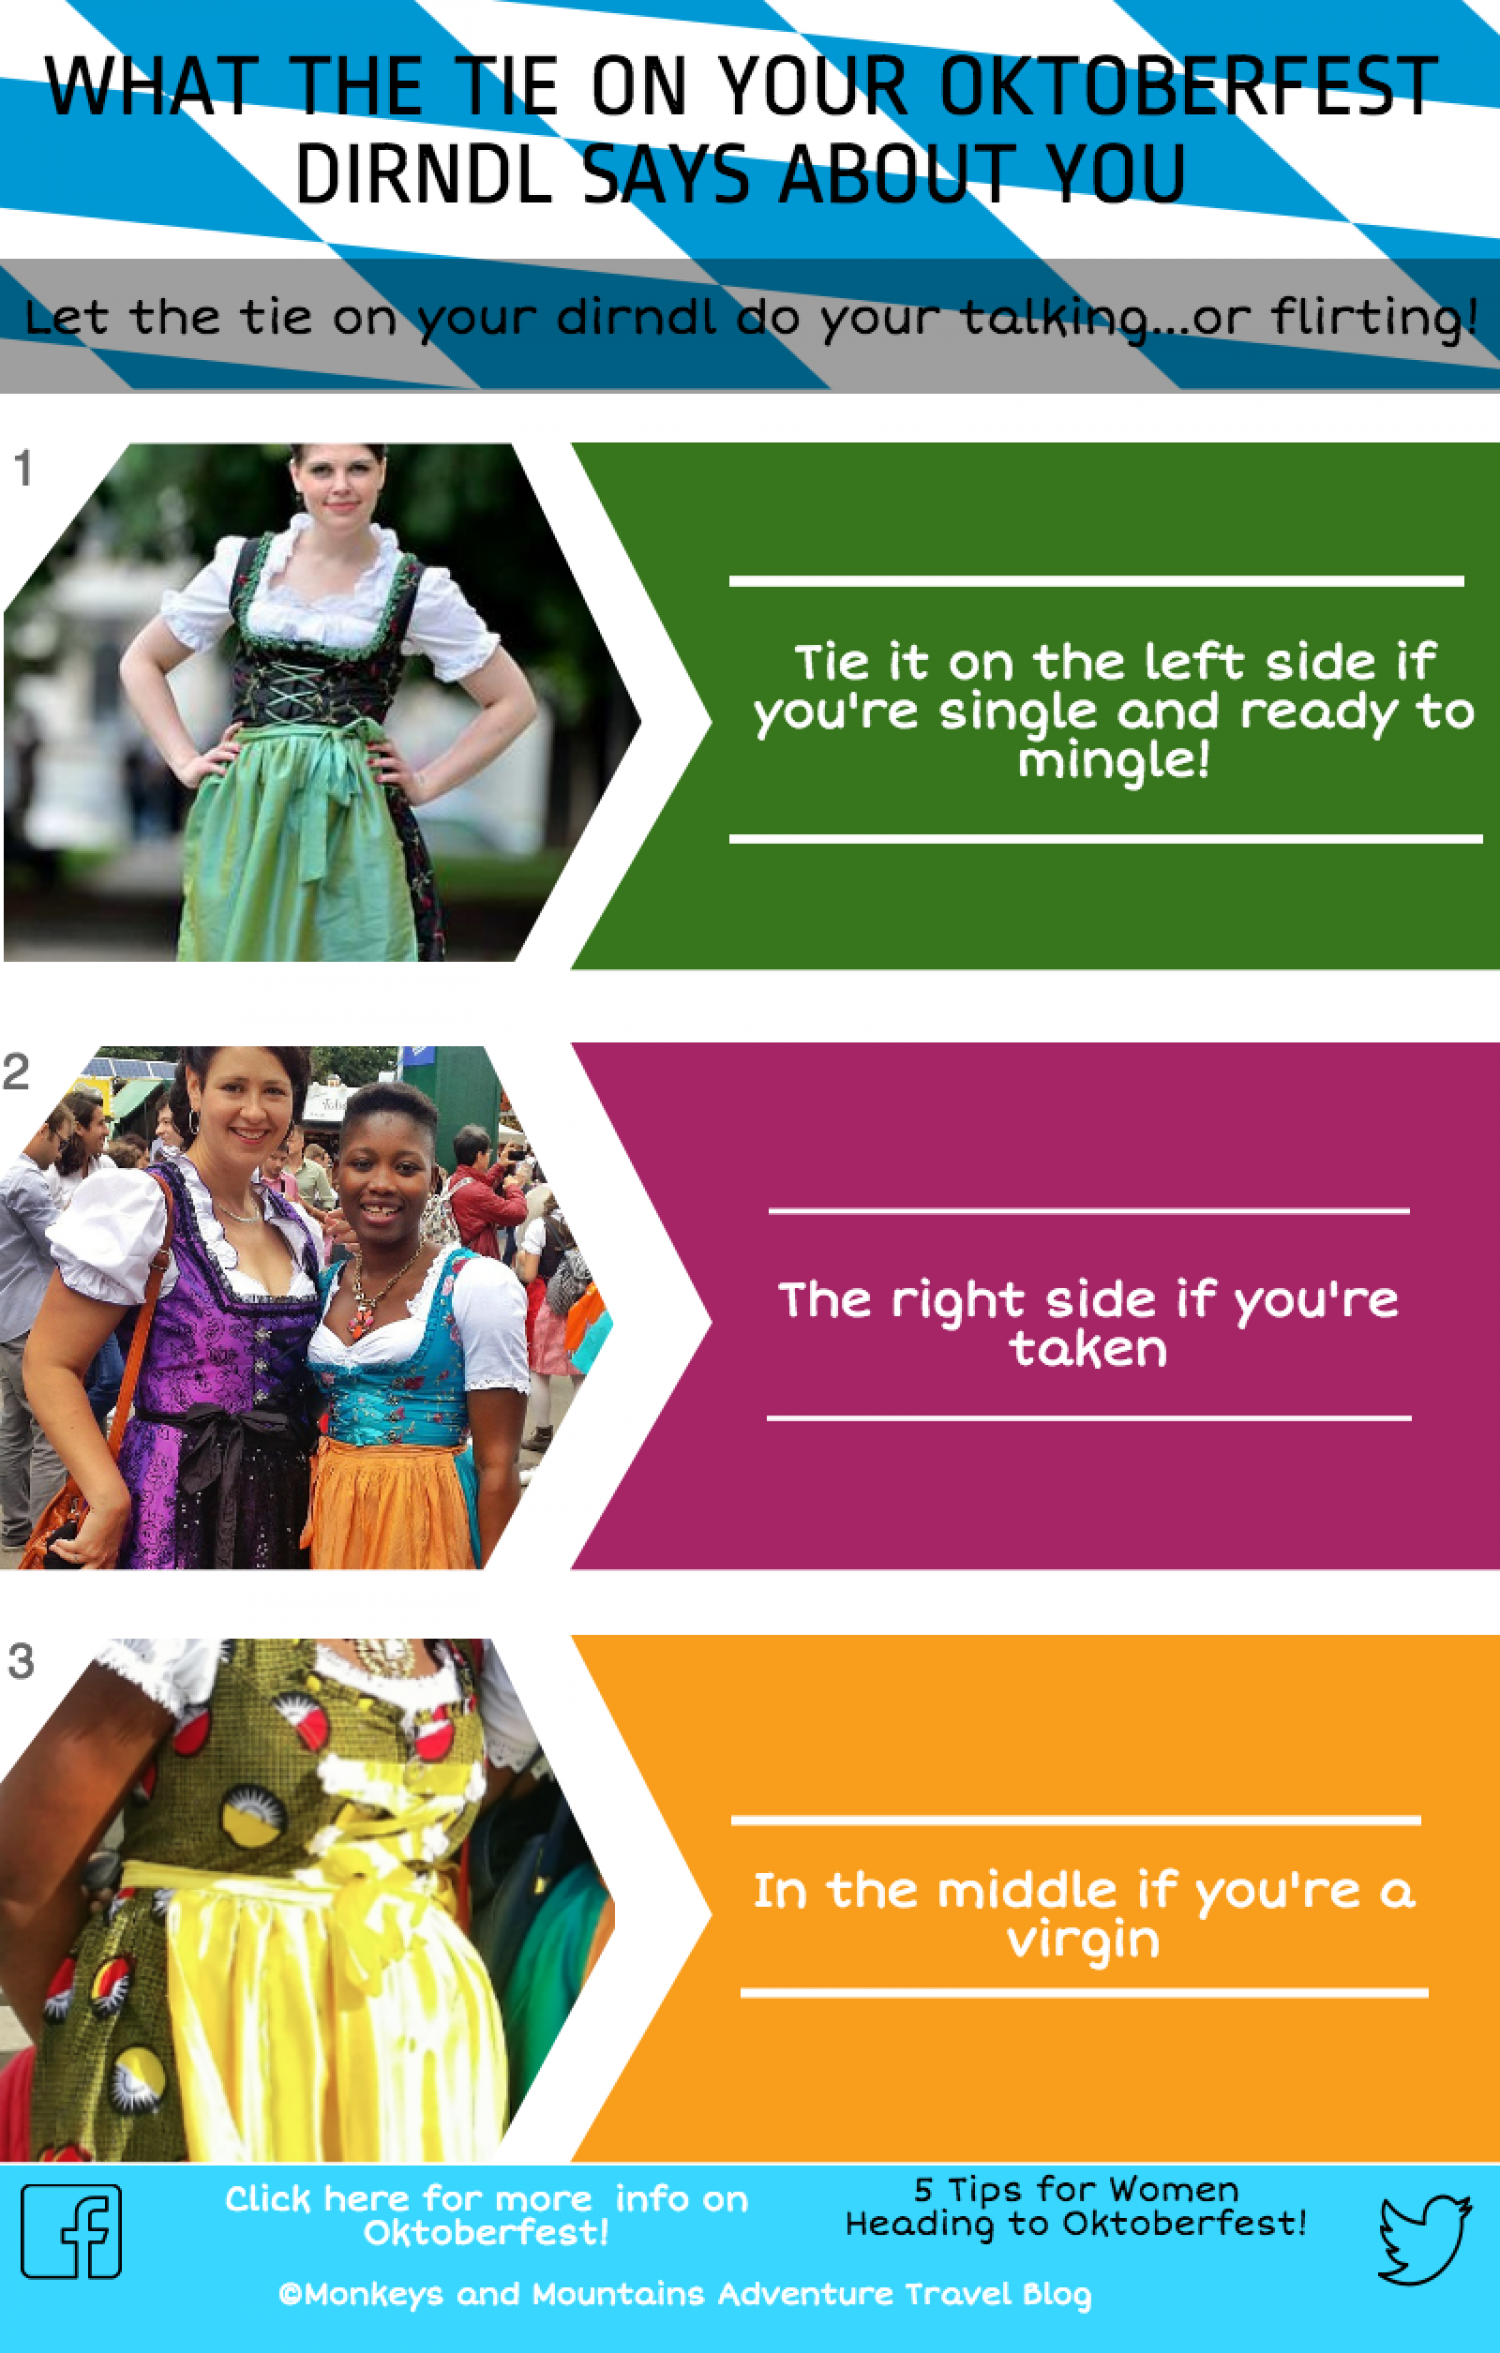 What the Tie on Your OKtoberfest Dirndl Says About You Infographic